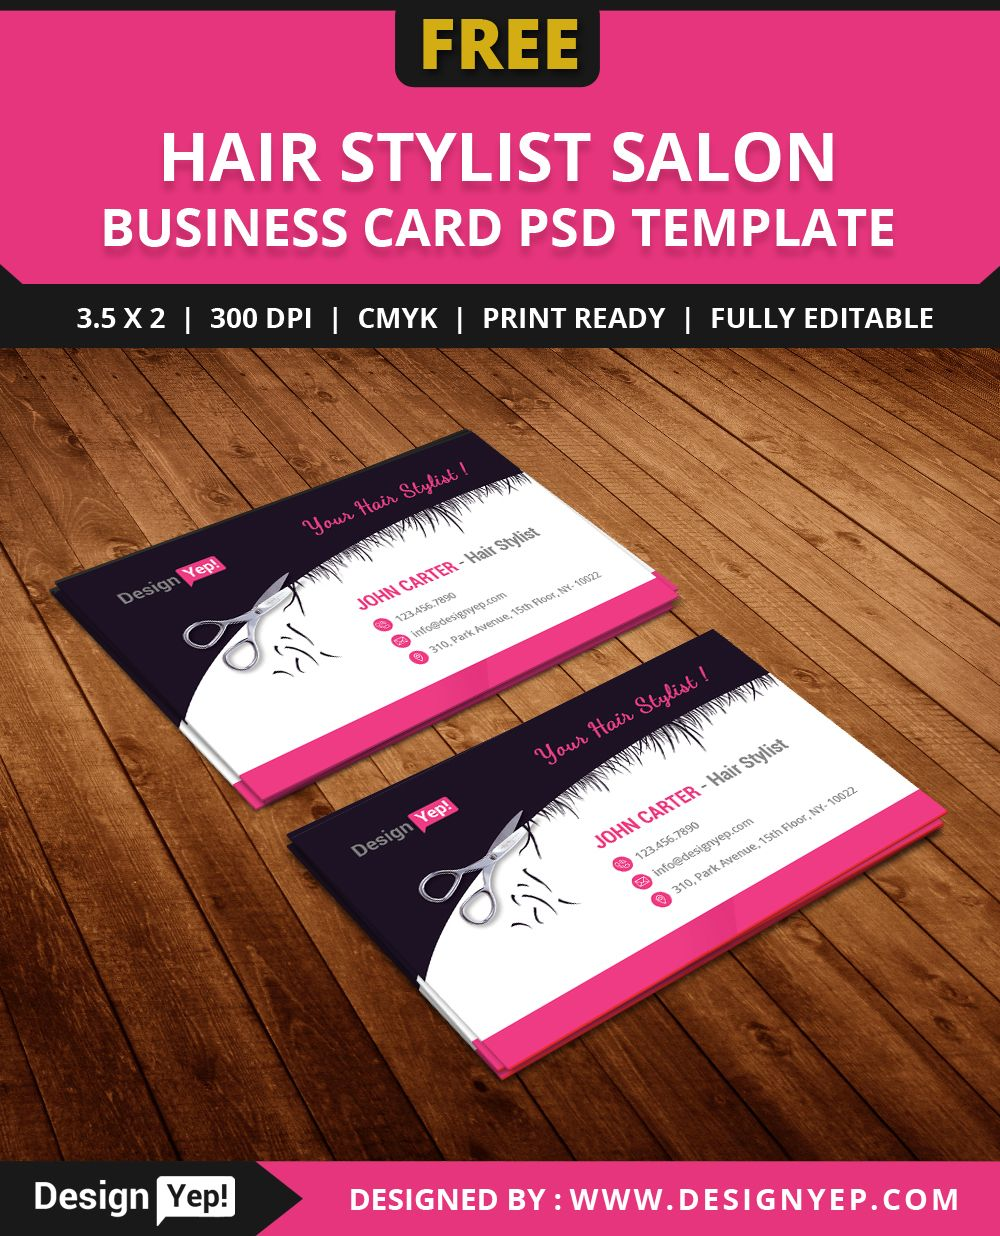 Free-Hair-Stylist-Salon-Business-Card-Template-PSD